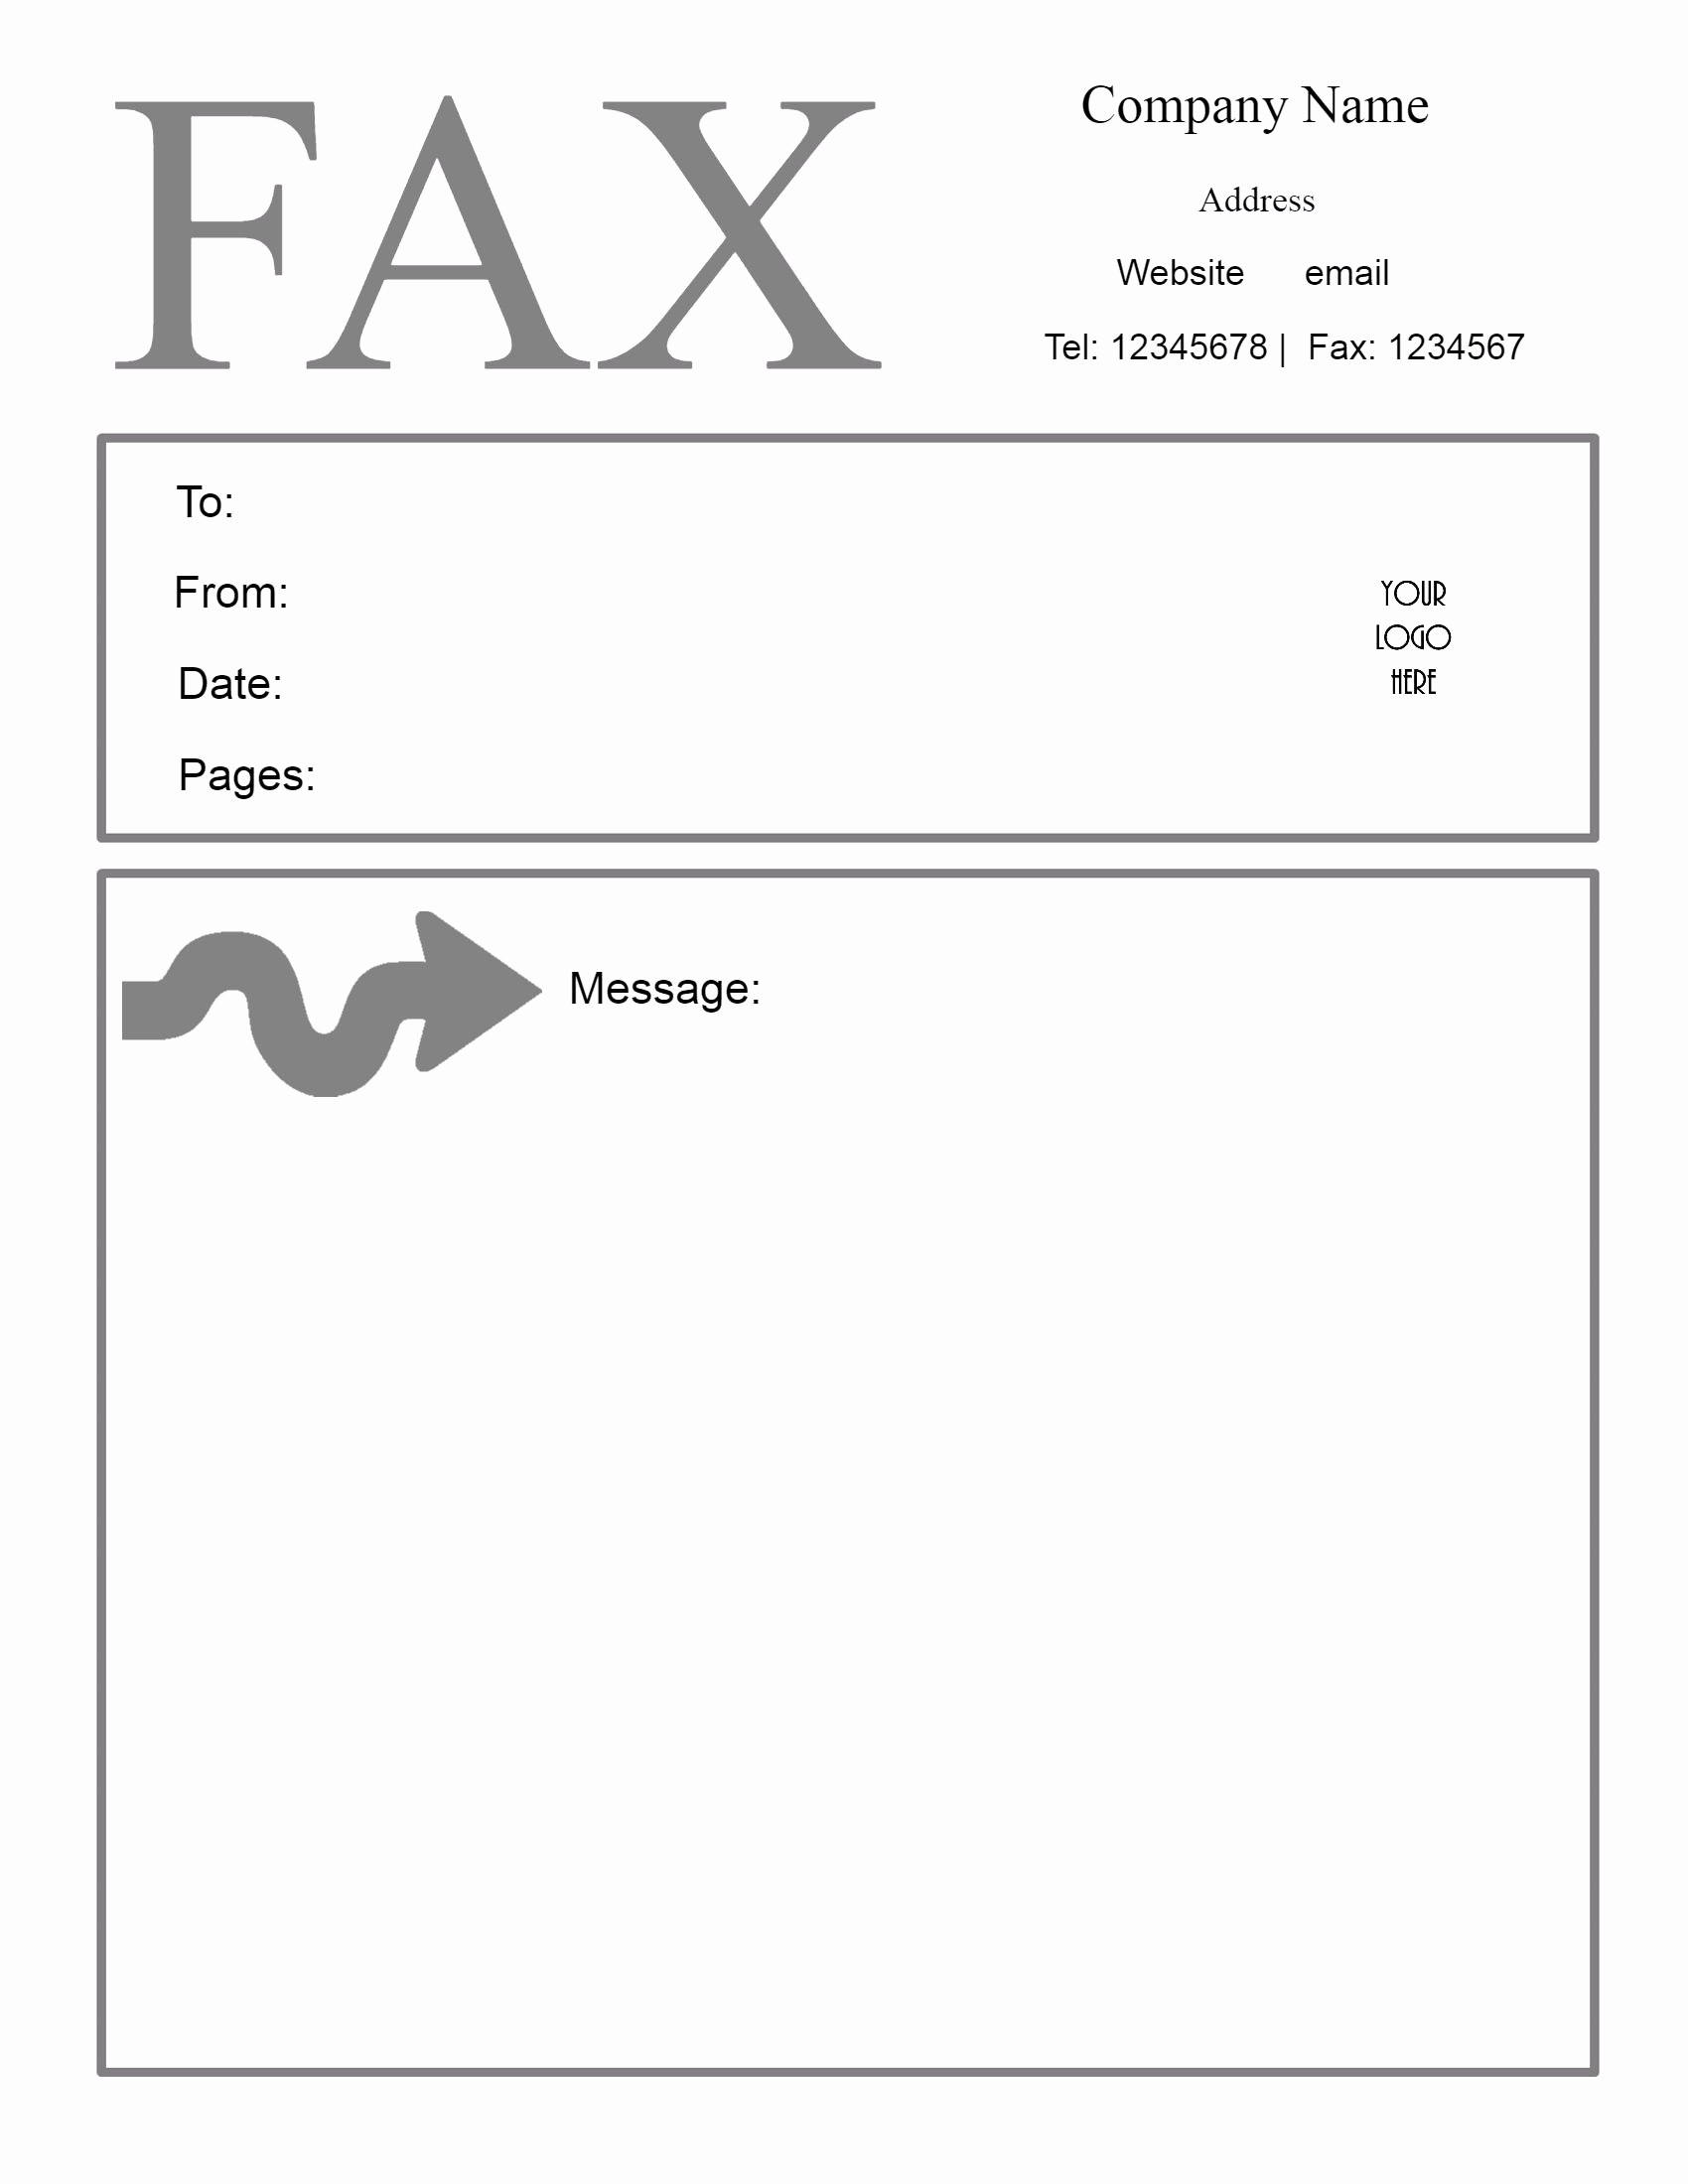 Free Fax Templates for Word Inspirational Free Fax Cover Sheet Template